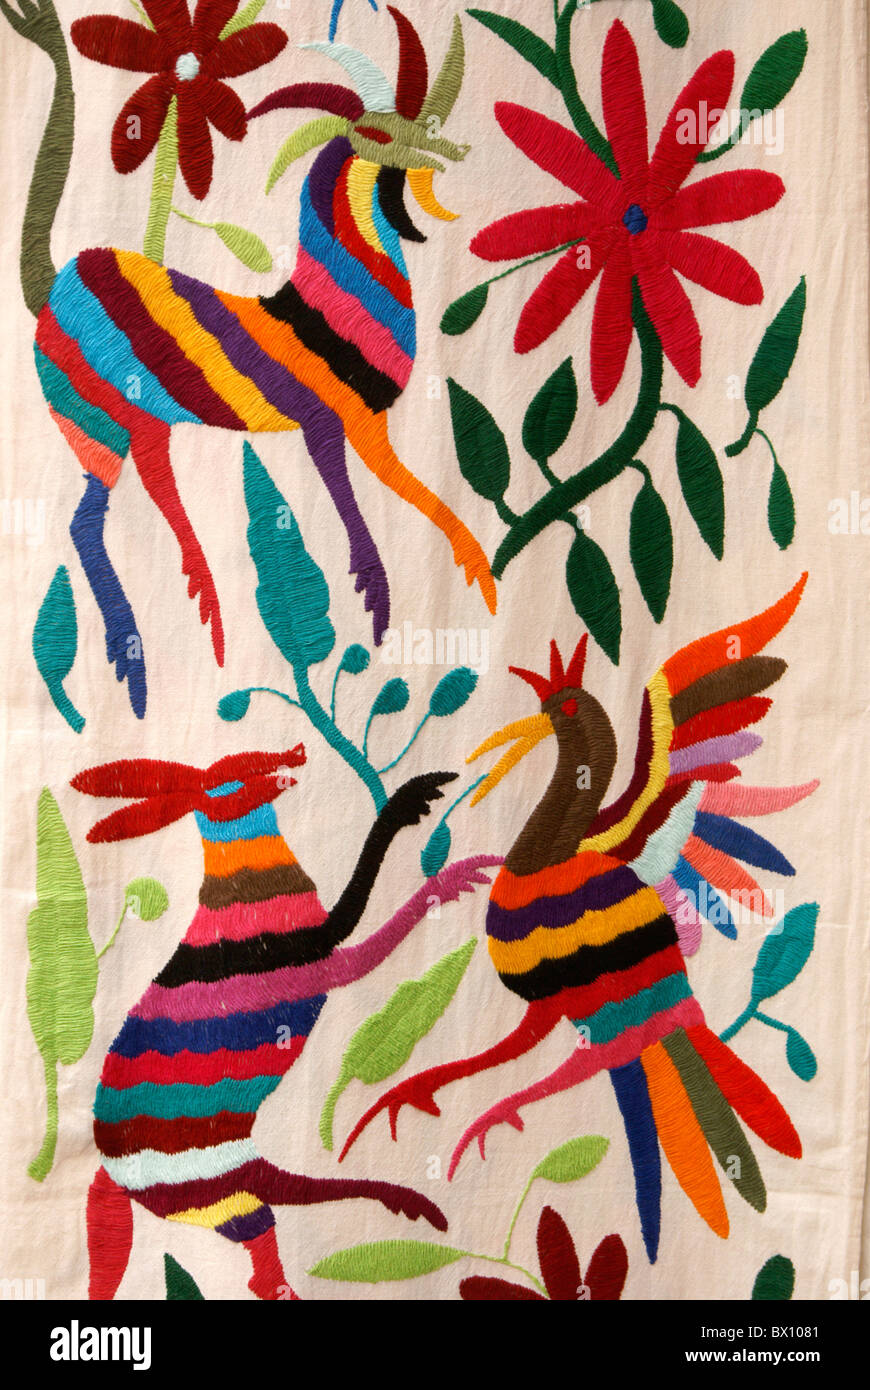 Traditional Embroidery From Otomi Village Of San Pablito Puebla Mexico For Sale In